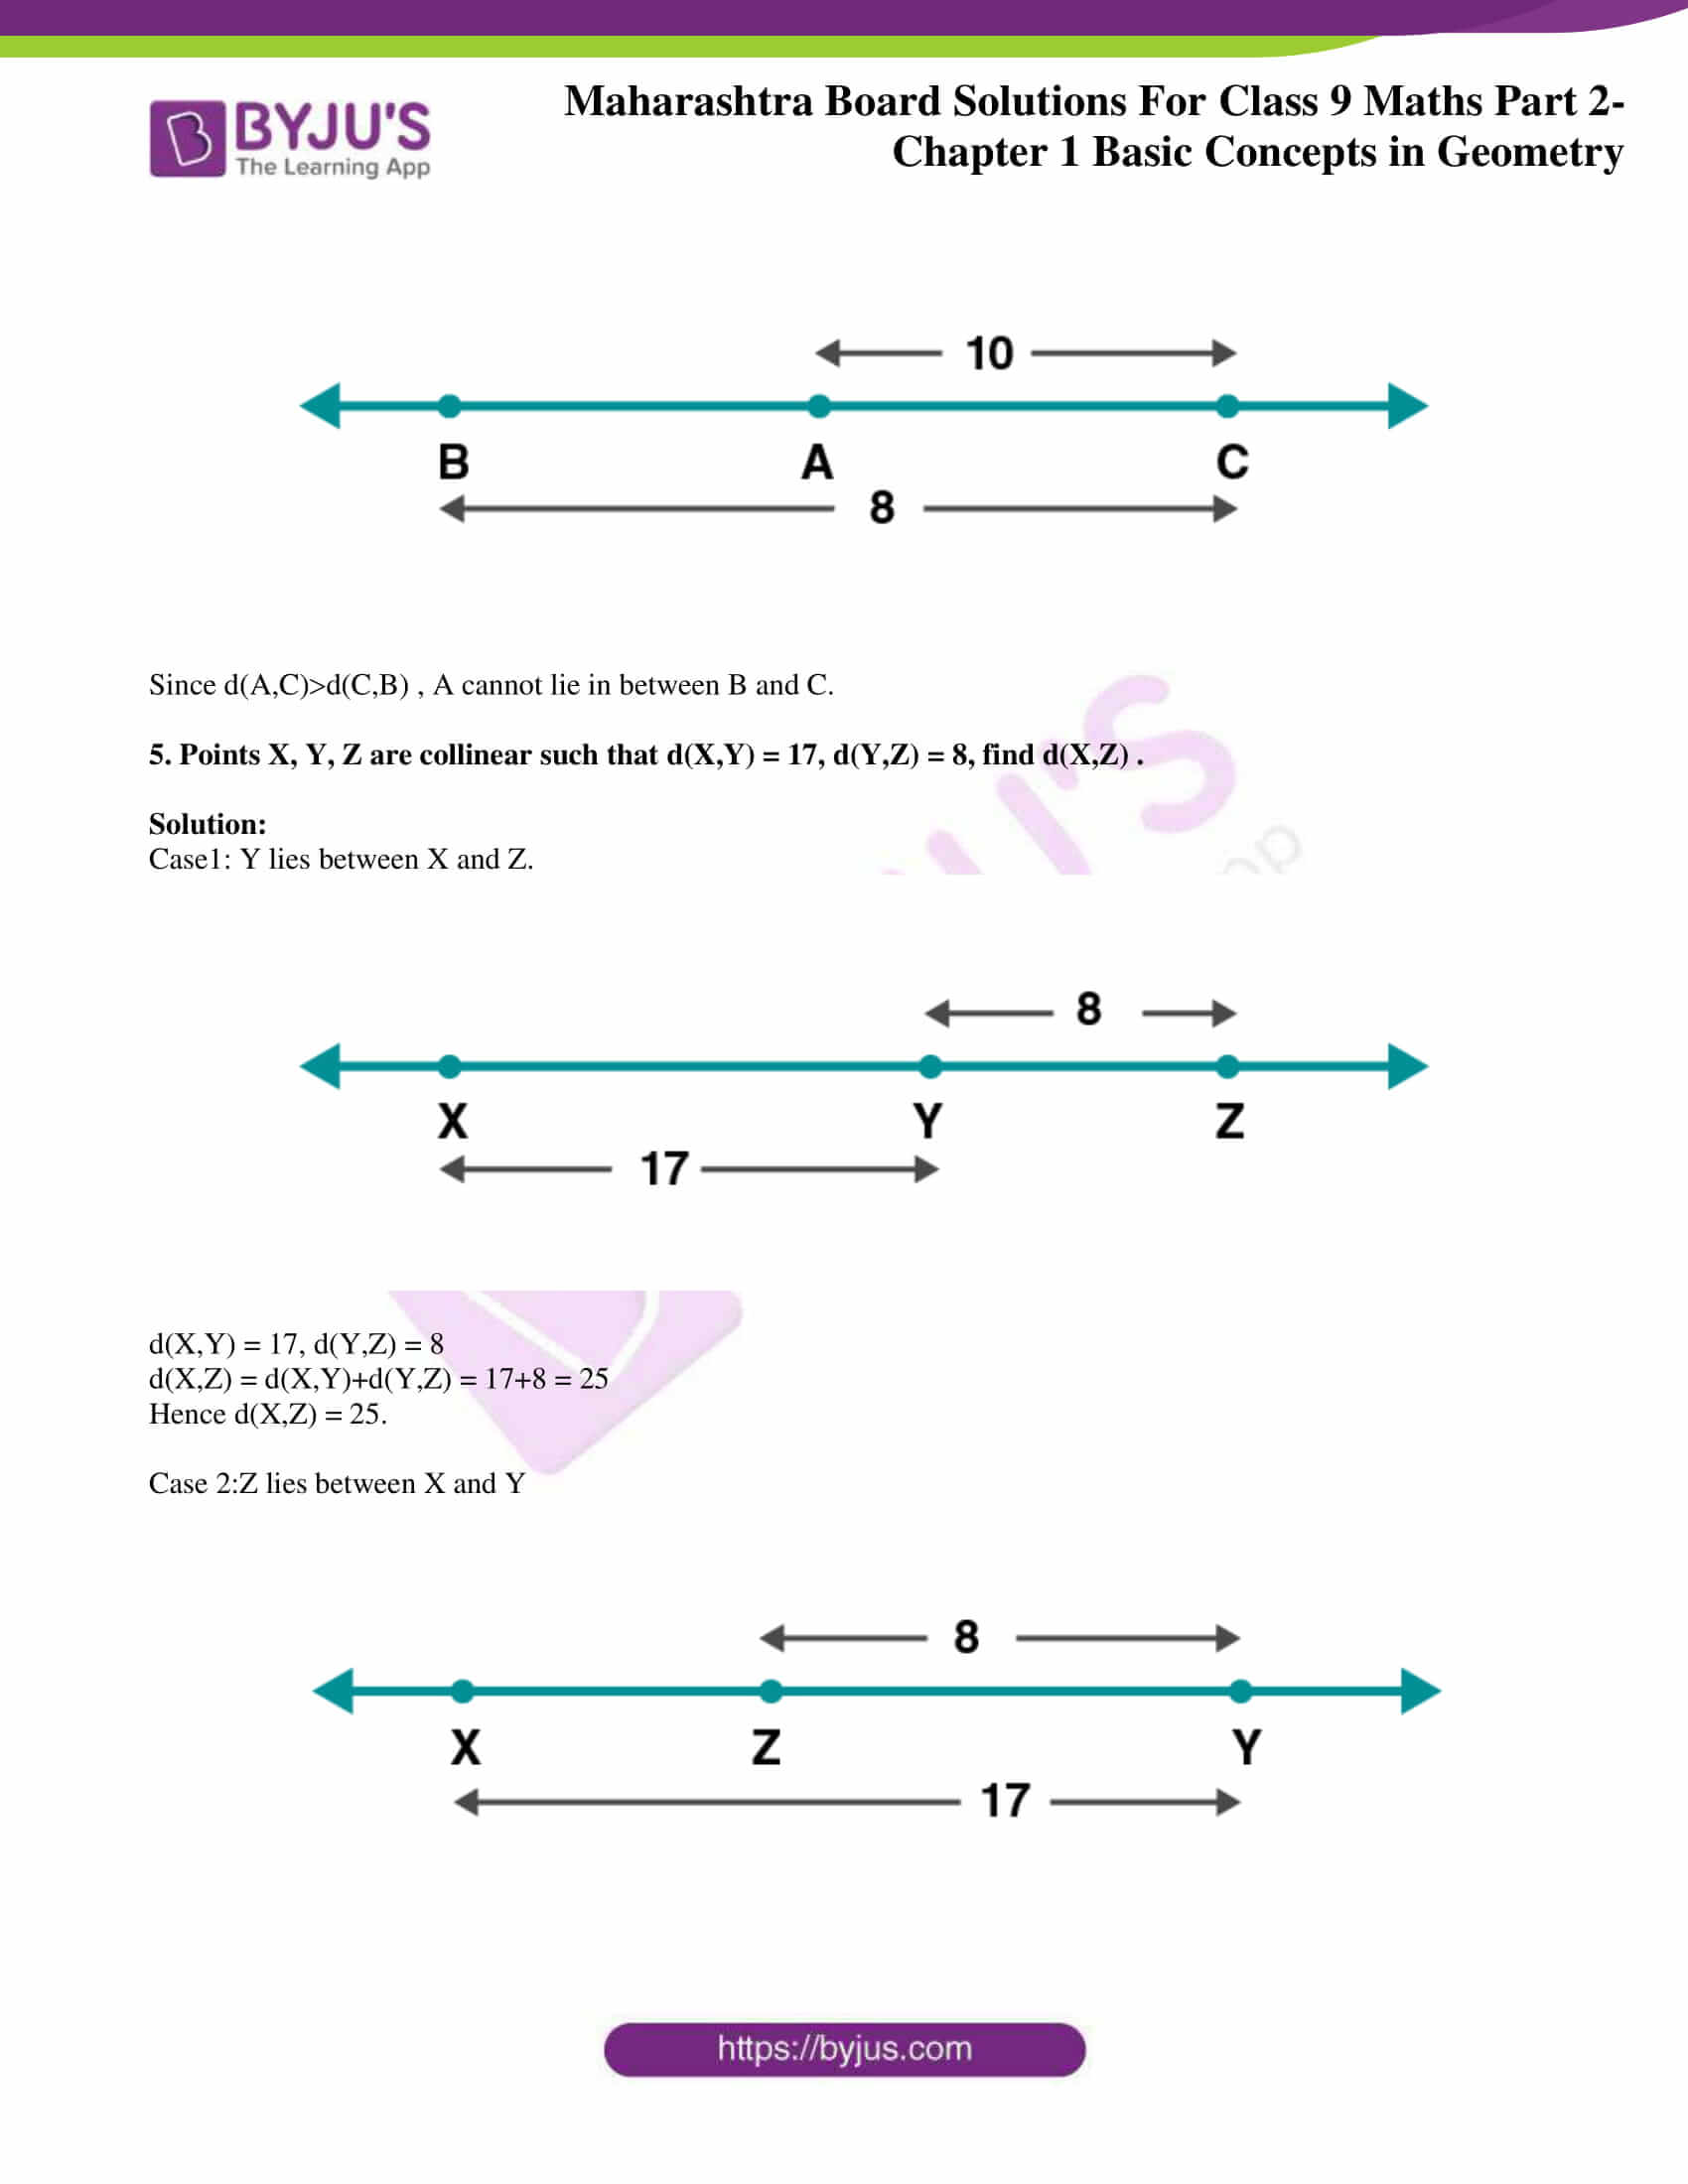 msbshse solutions for class 9 maths part 2 chapter 1 05